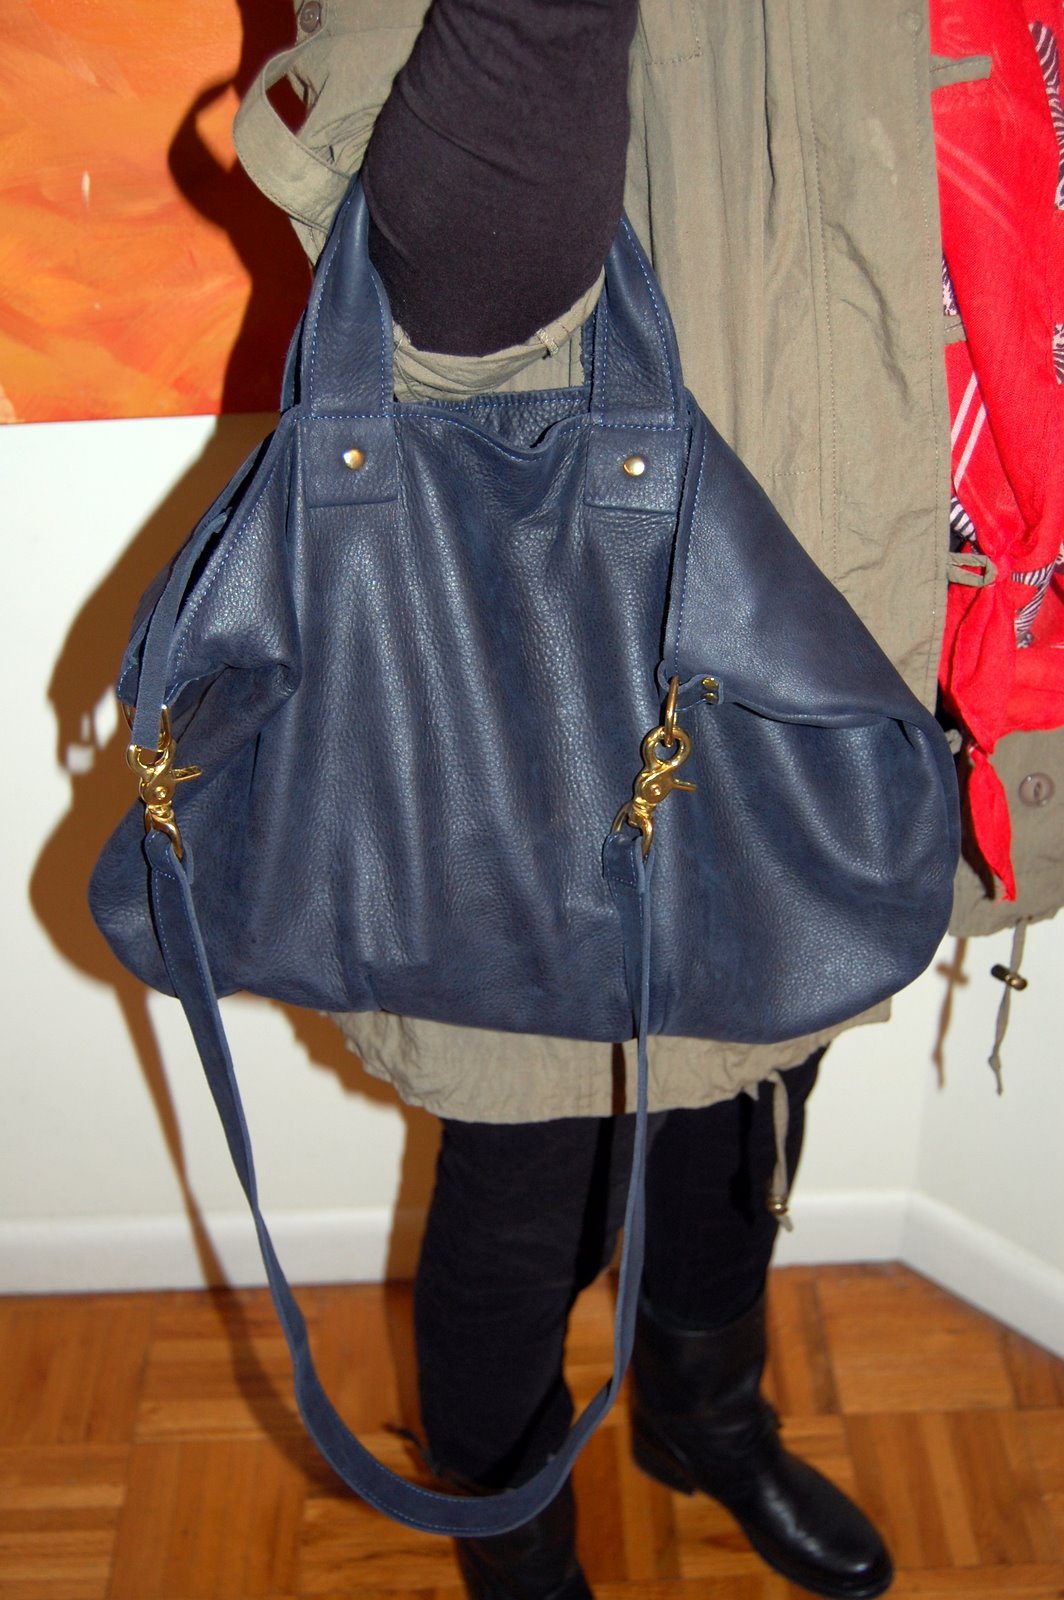 It S Simple A Great Color And Fabulous Leather Quickly Becoming My Favorite Bag Just Like That